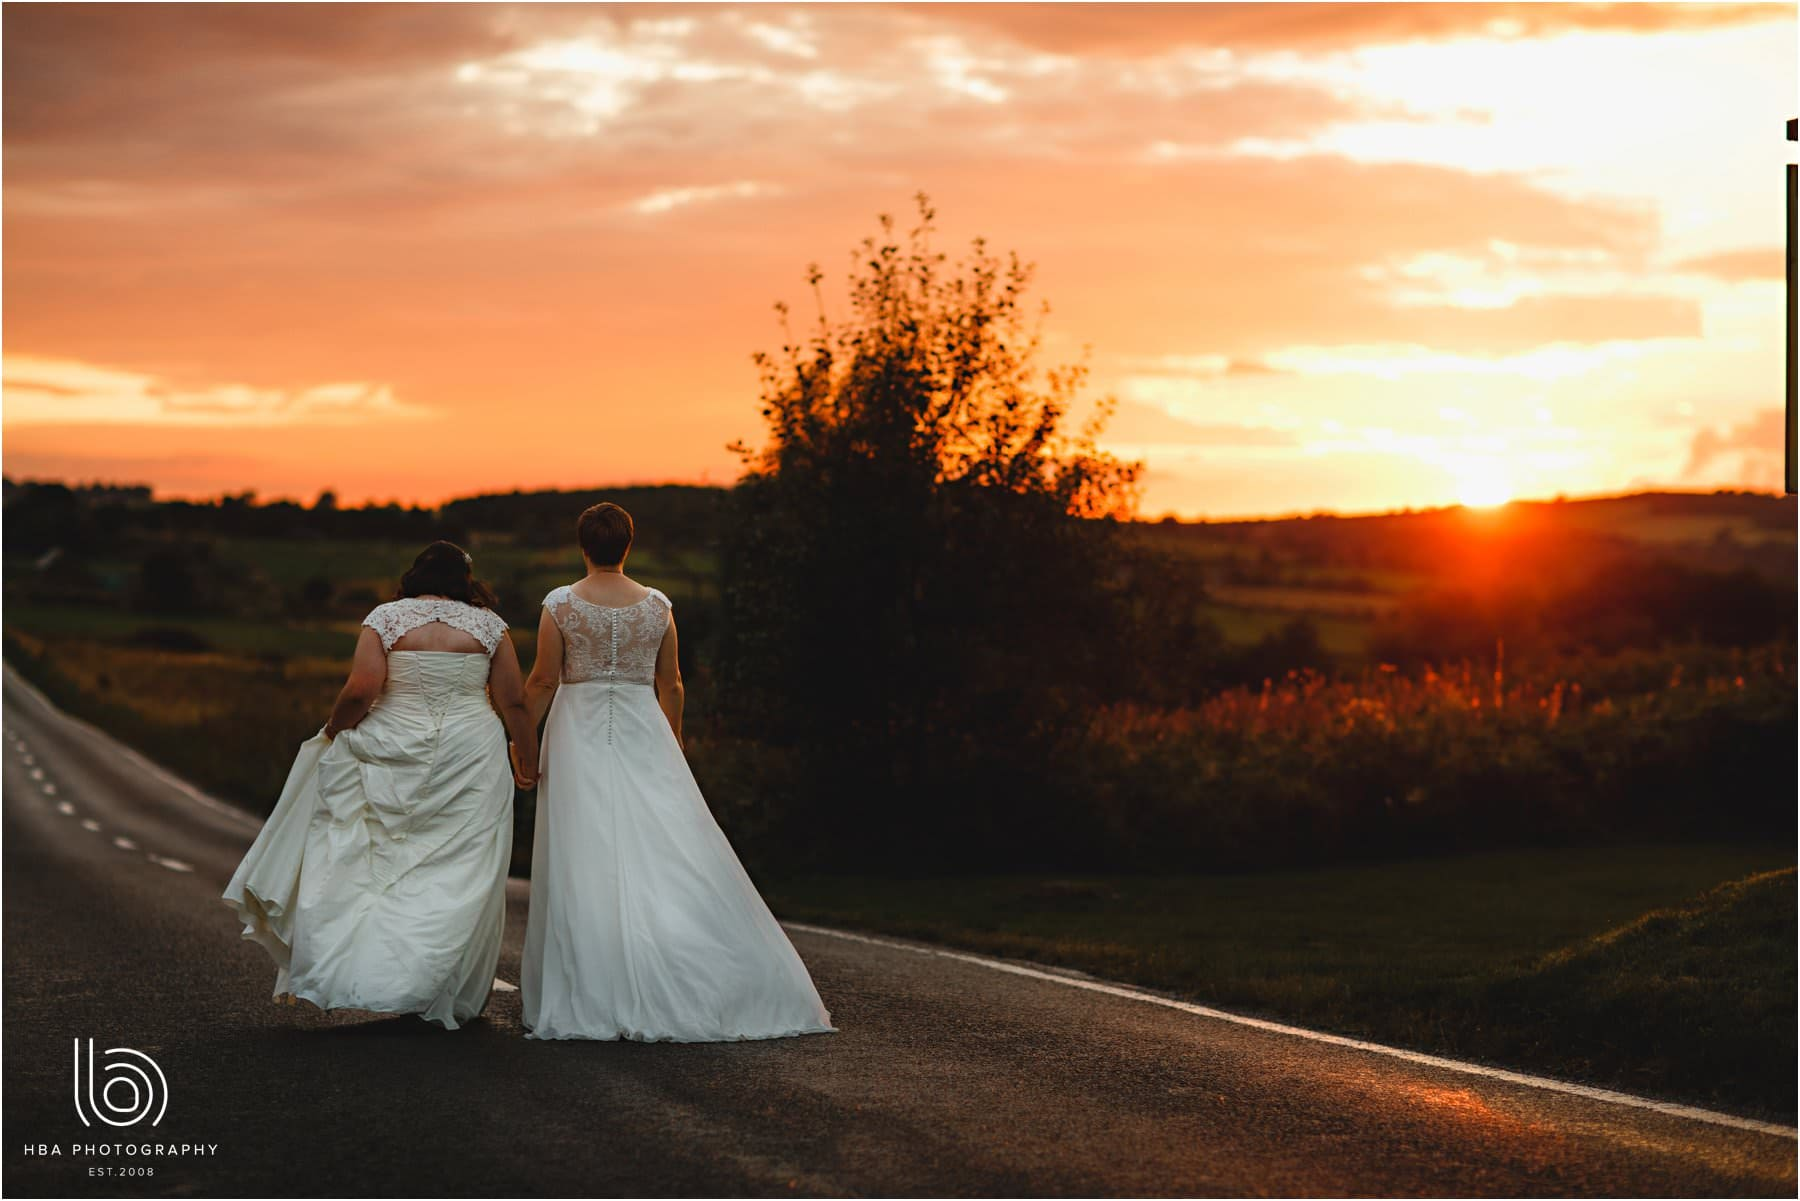 the two brides at sunset